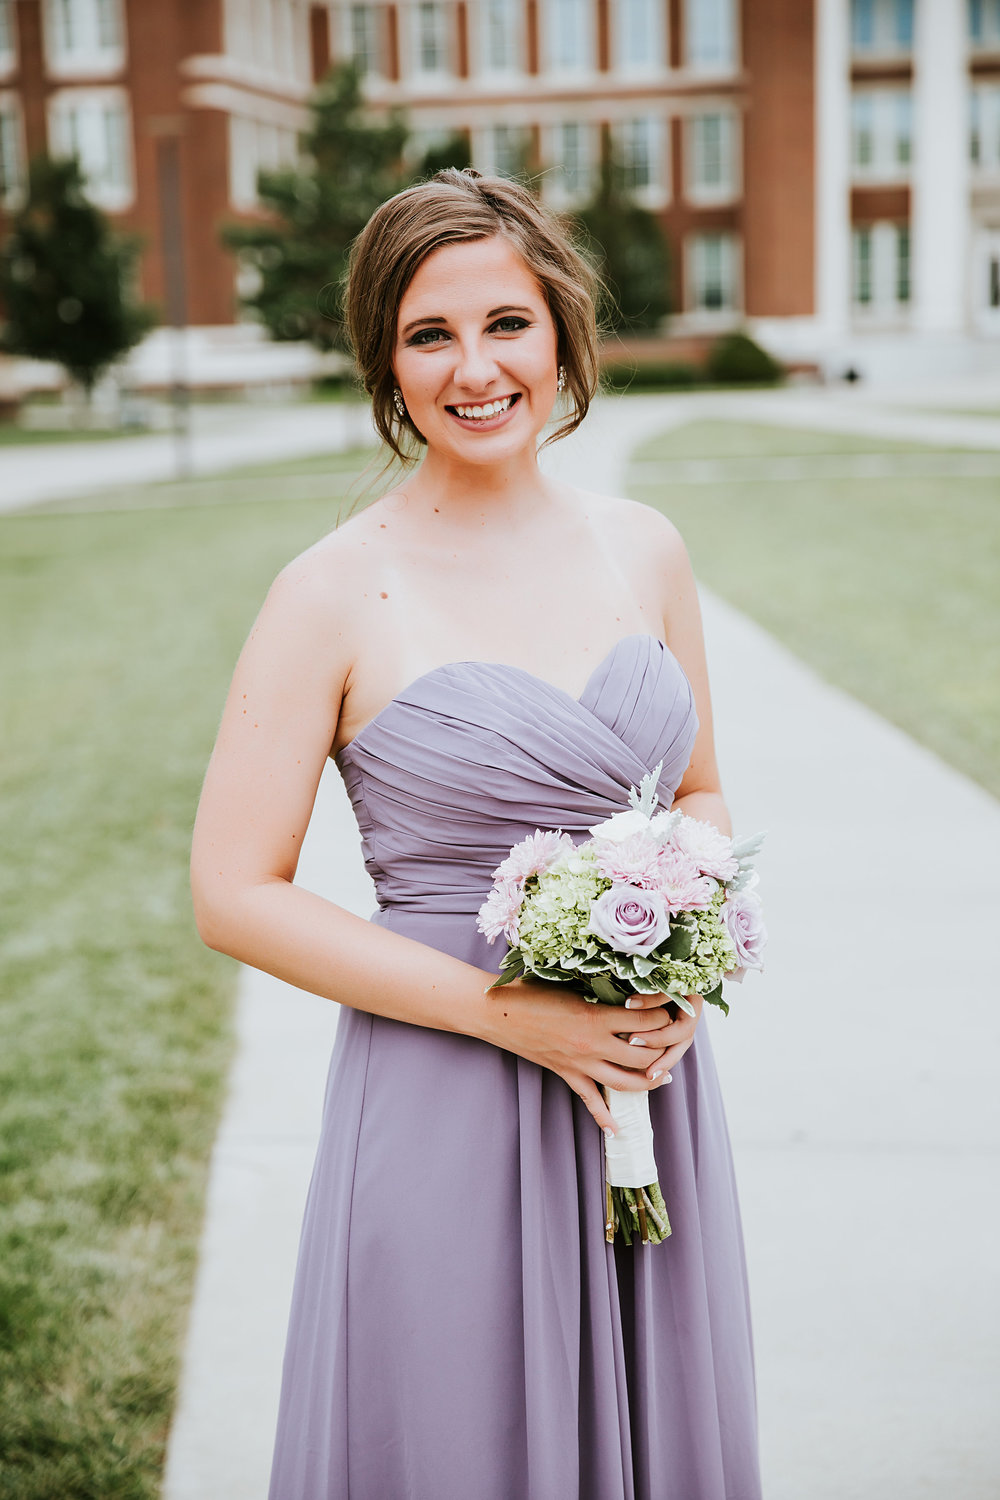 And this post would not be complete without a little bridesmaid love! Makeup on this lovely lady was done by  Jenny